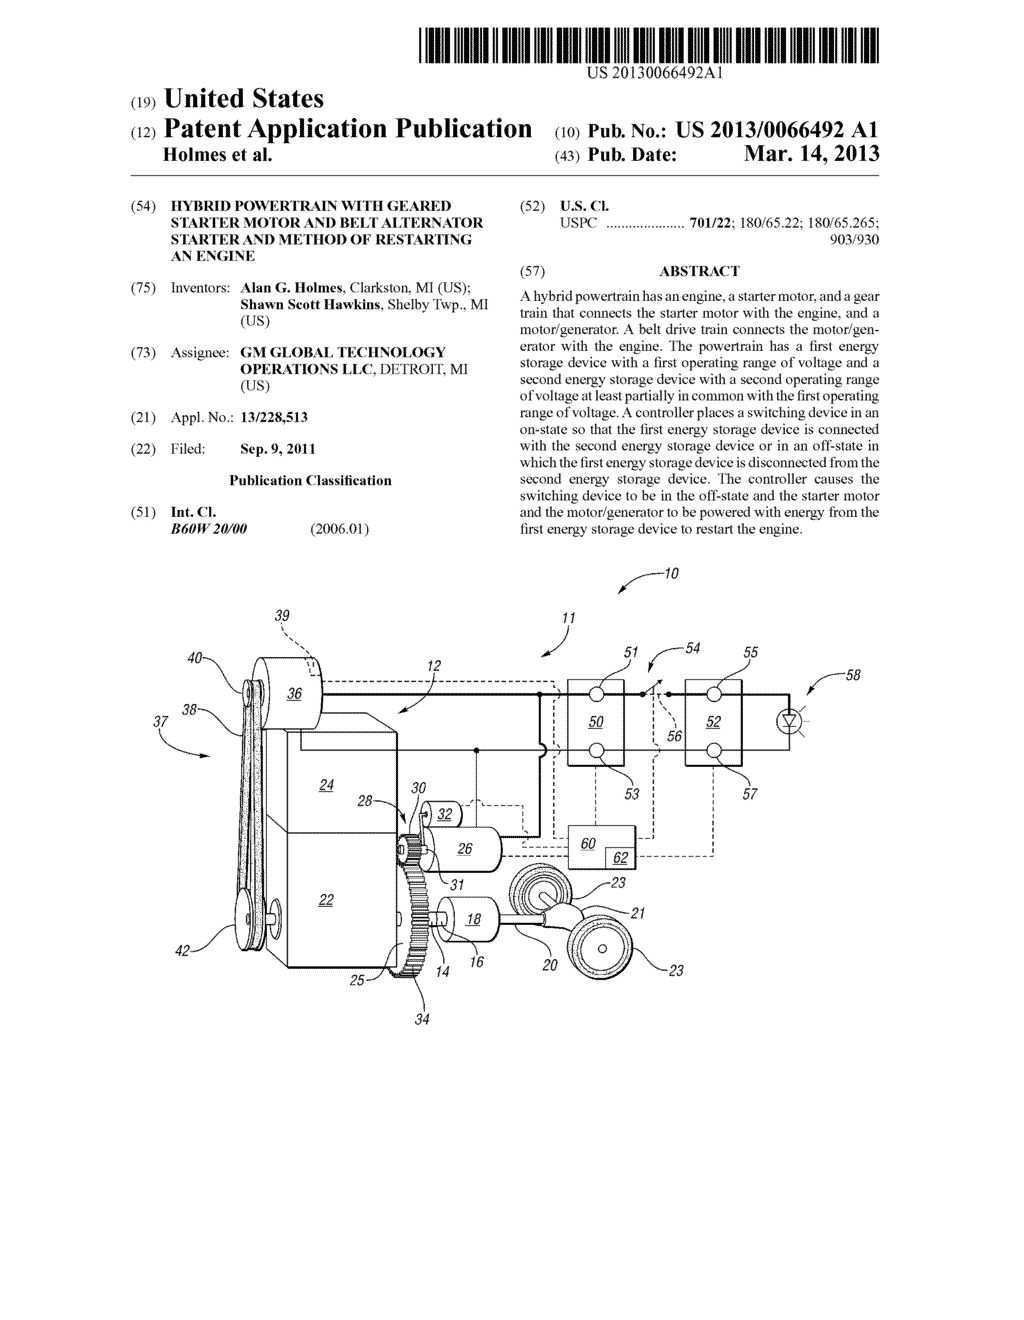 HYBRID POWERTRAIN WITH GEARED STARTER MOTOR AND BELT ALTERNATOR STARTER     AND METHOD OF RESTARTING AN ENGINE - diagram, schematic, and image 01